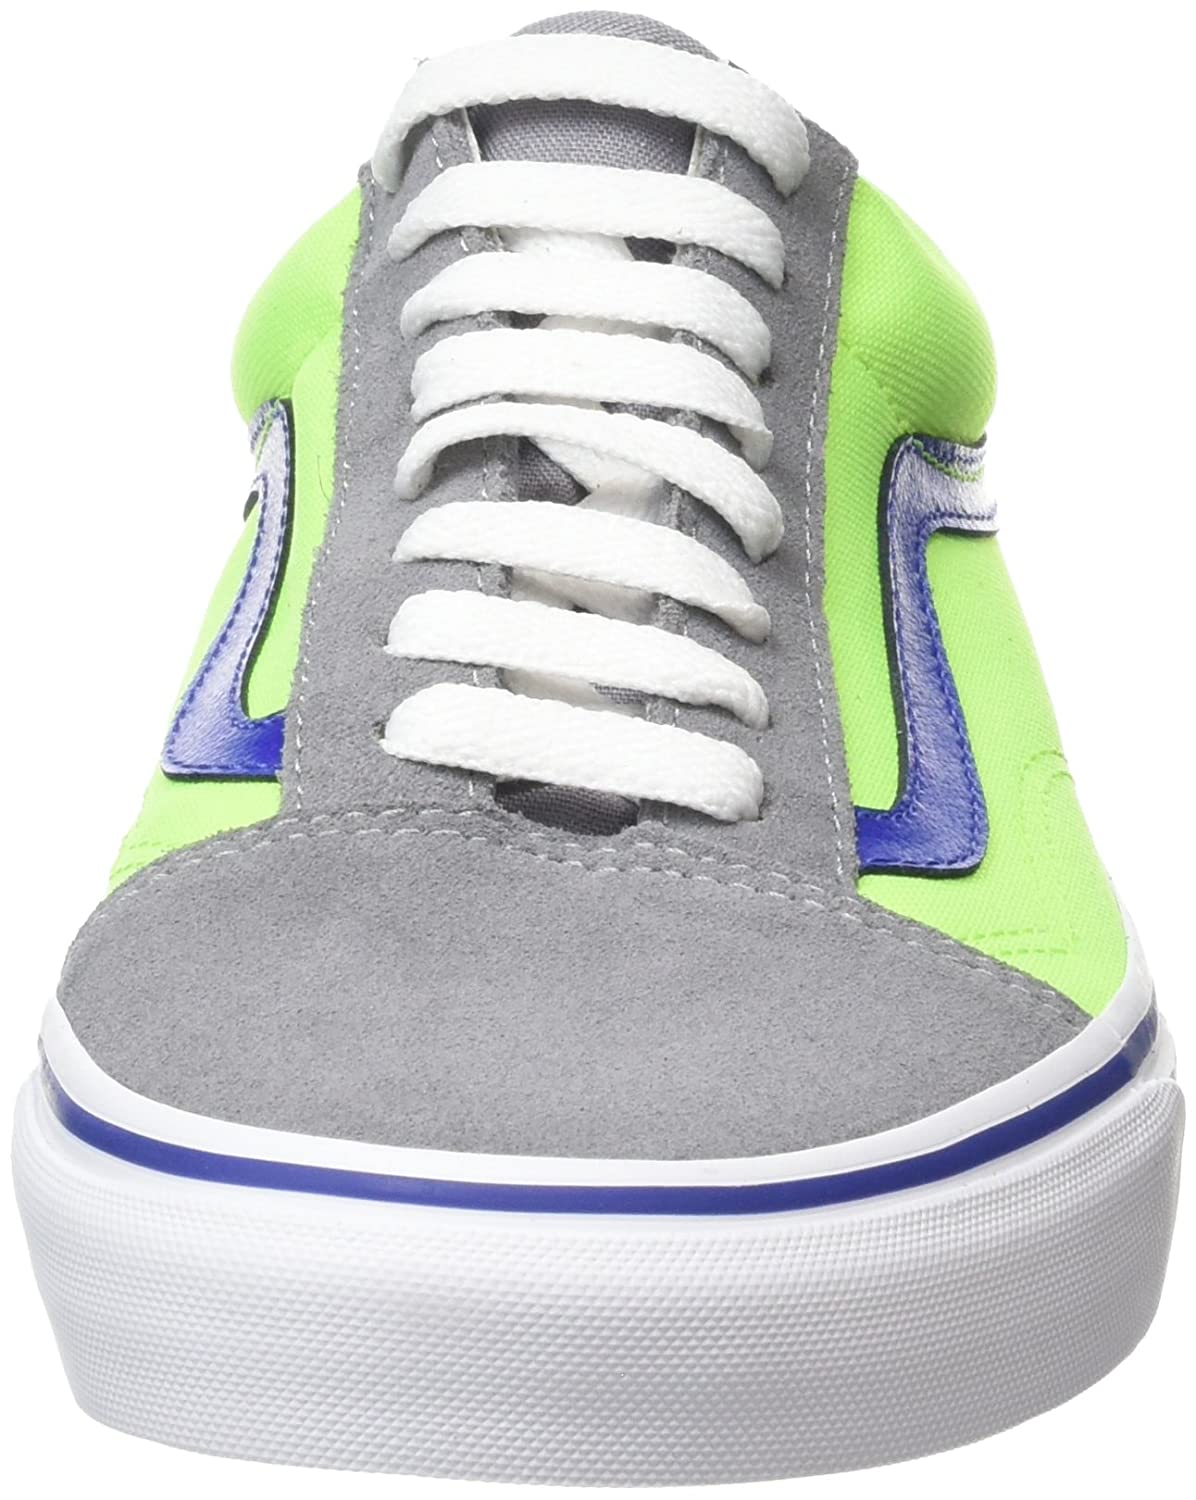 Amazon.com | Vans Old Skool (Brite) Frost Gray/Neon G - Mens 11m, womens  12.5m - VN0004OJJSV | Skateboarding